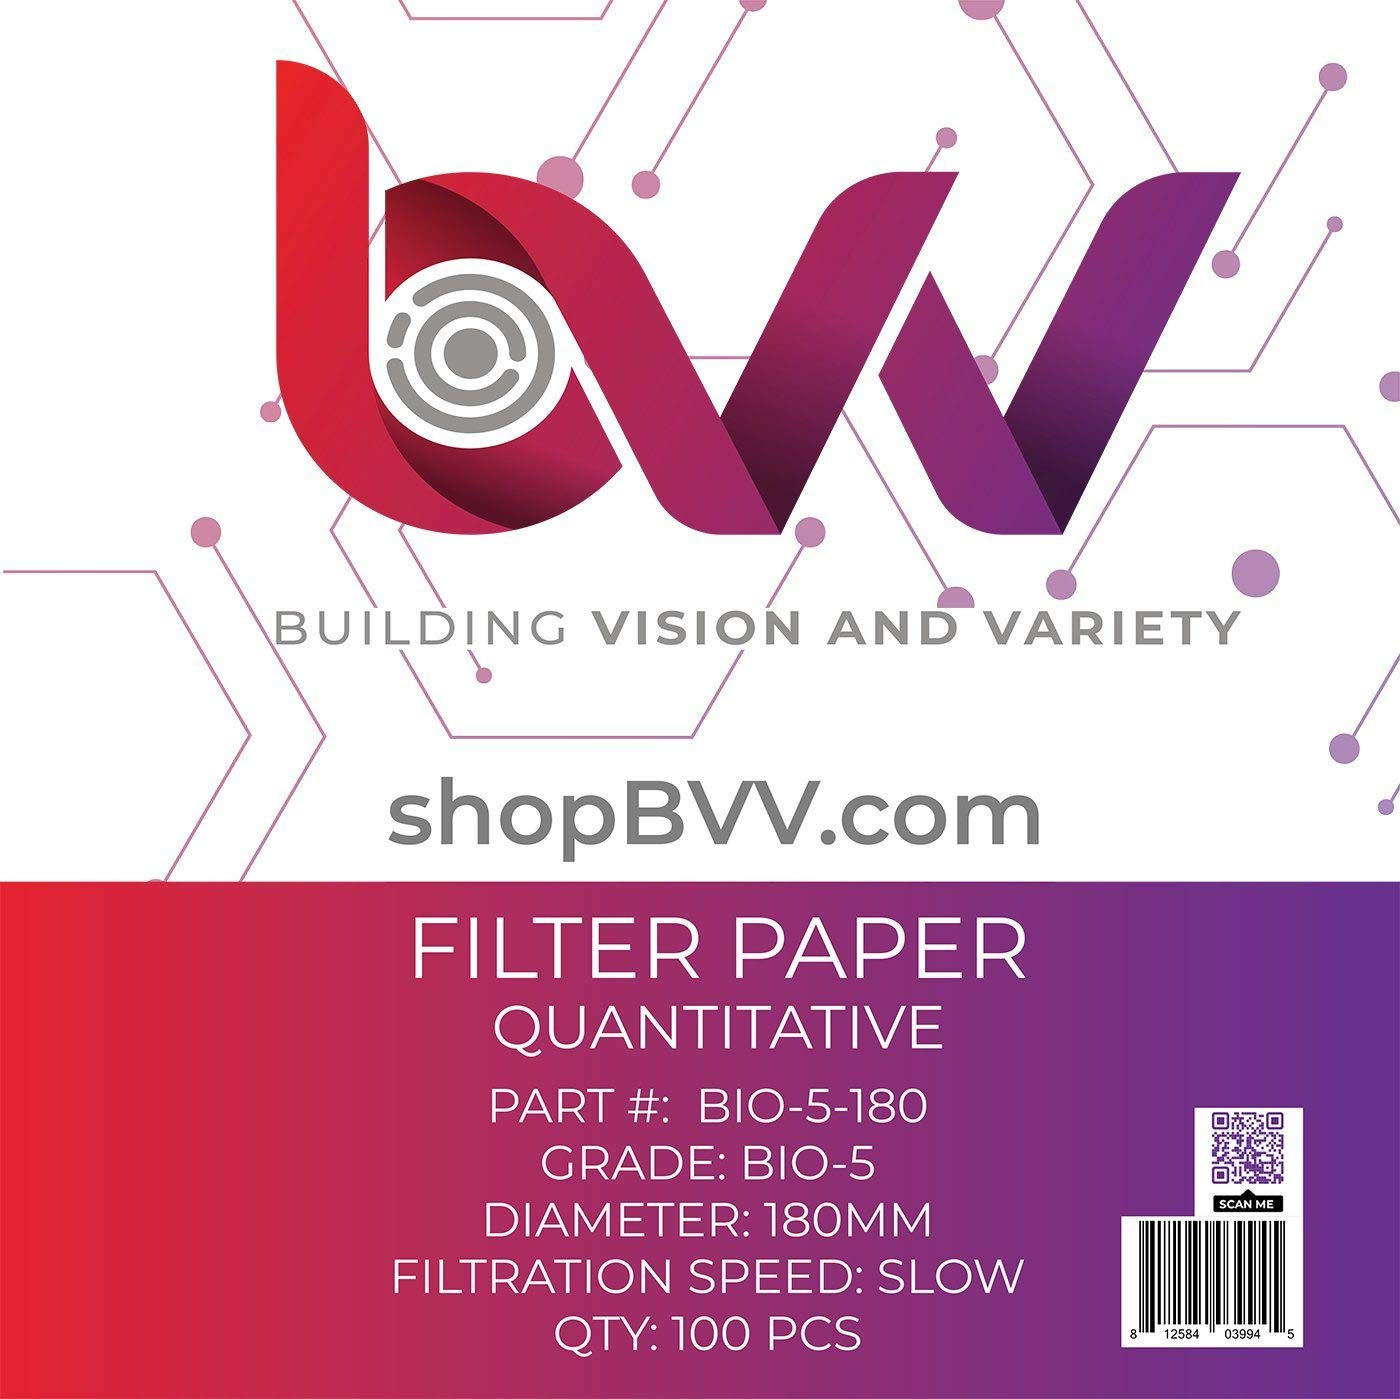 BVV Baltimore Outlet ☆ Free Shipping Mall Ashless Filter Papers - Millimeter Qualitative 180 Grade